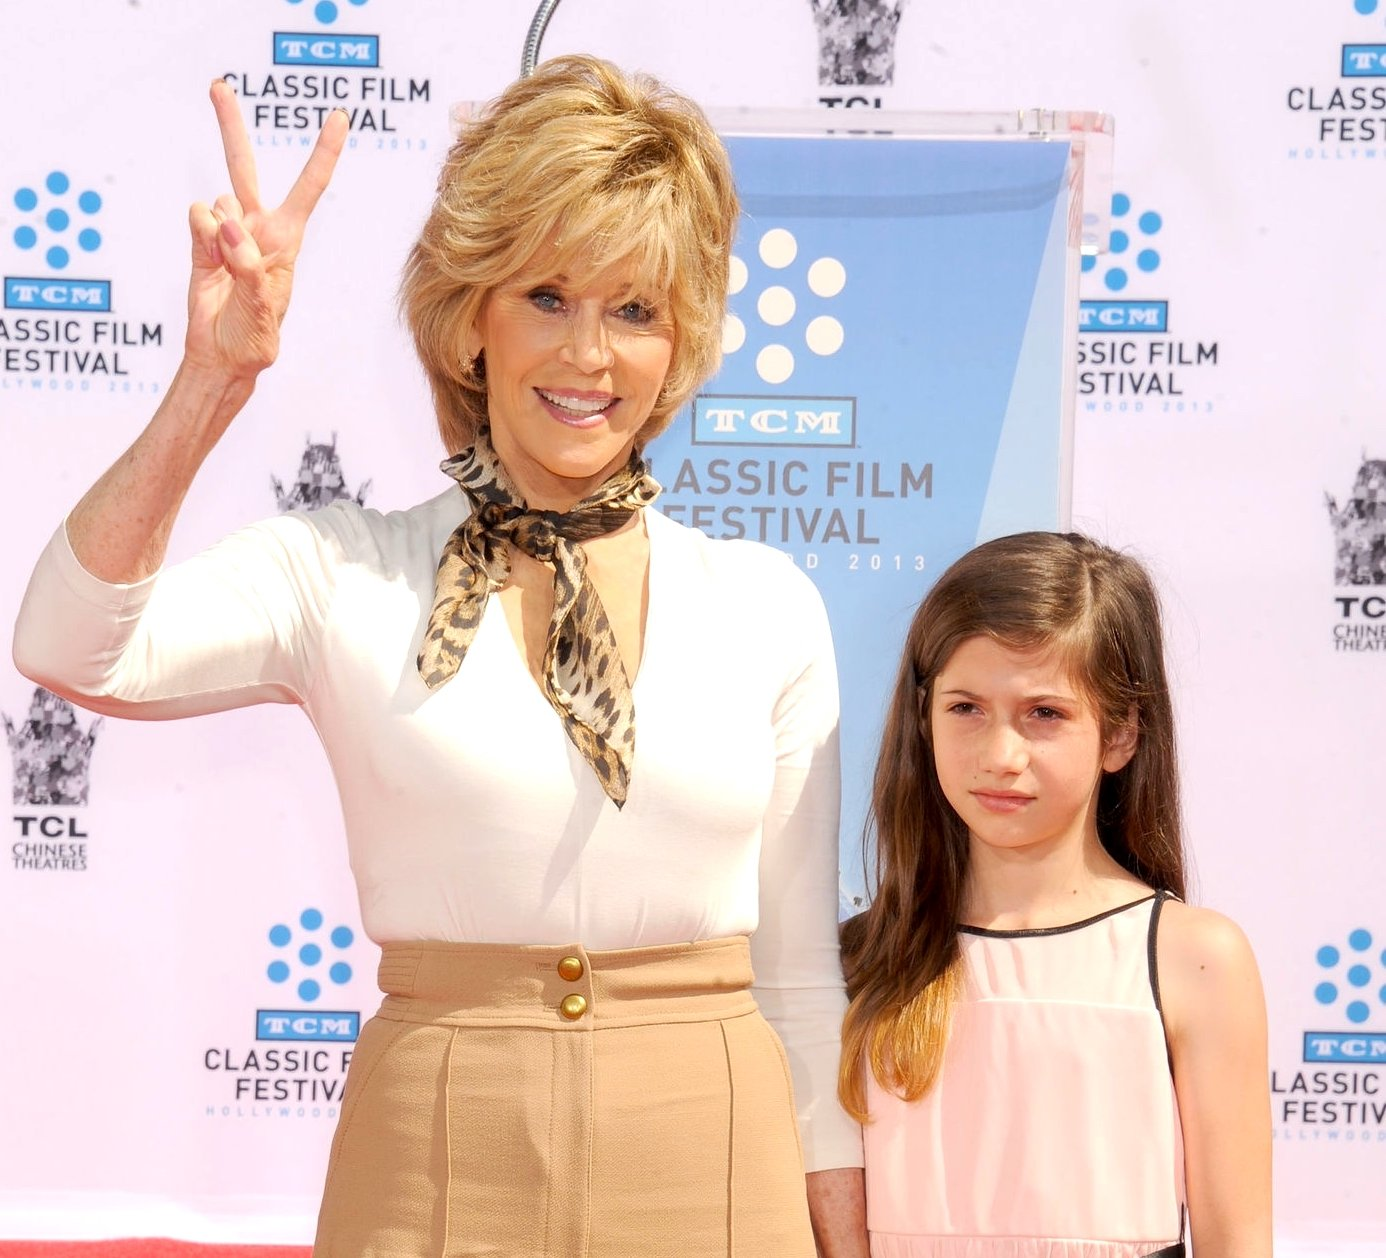 Image Credit: Getty Images/Jane Fonda posing with her granddaughter